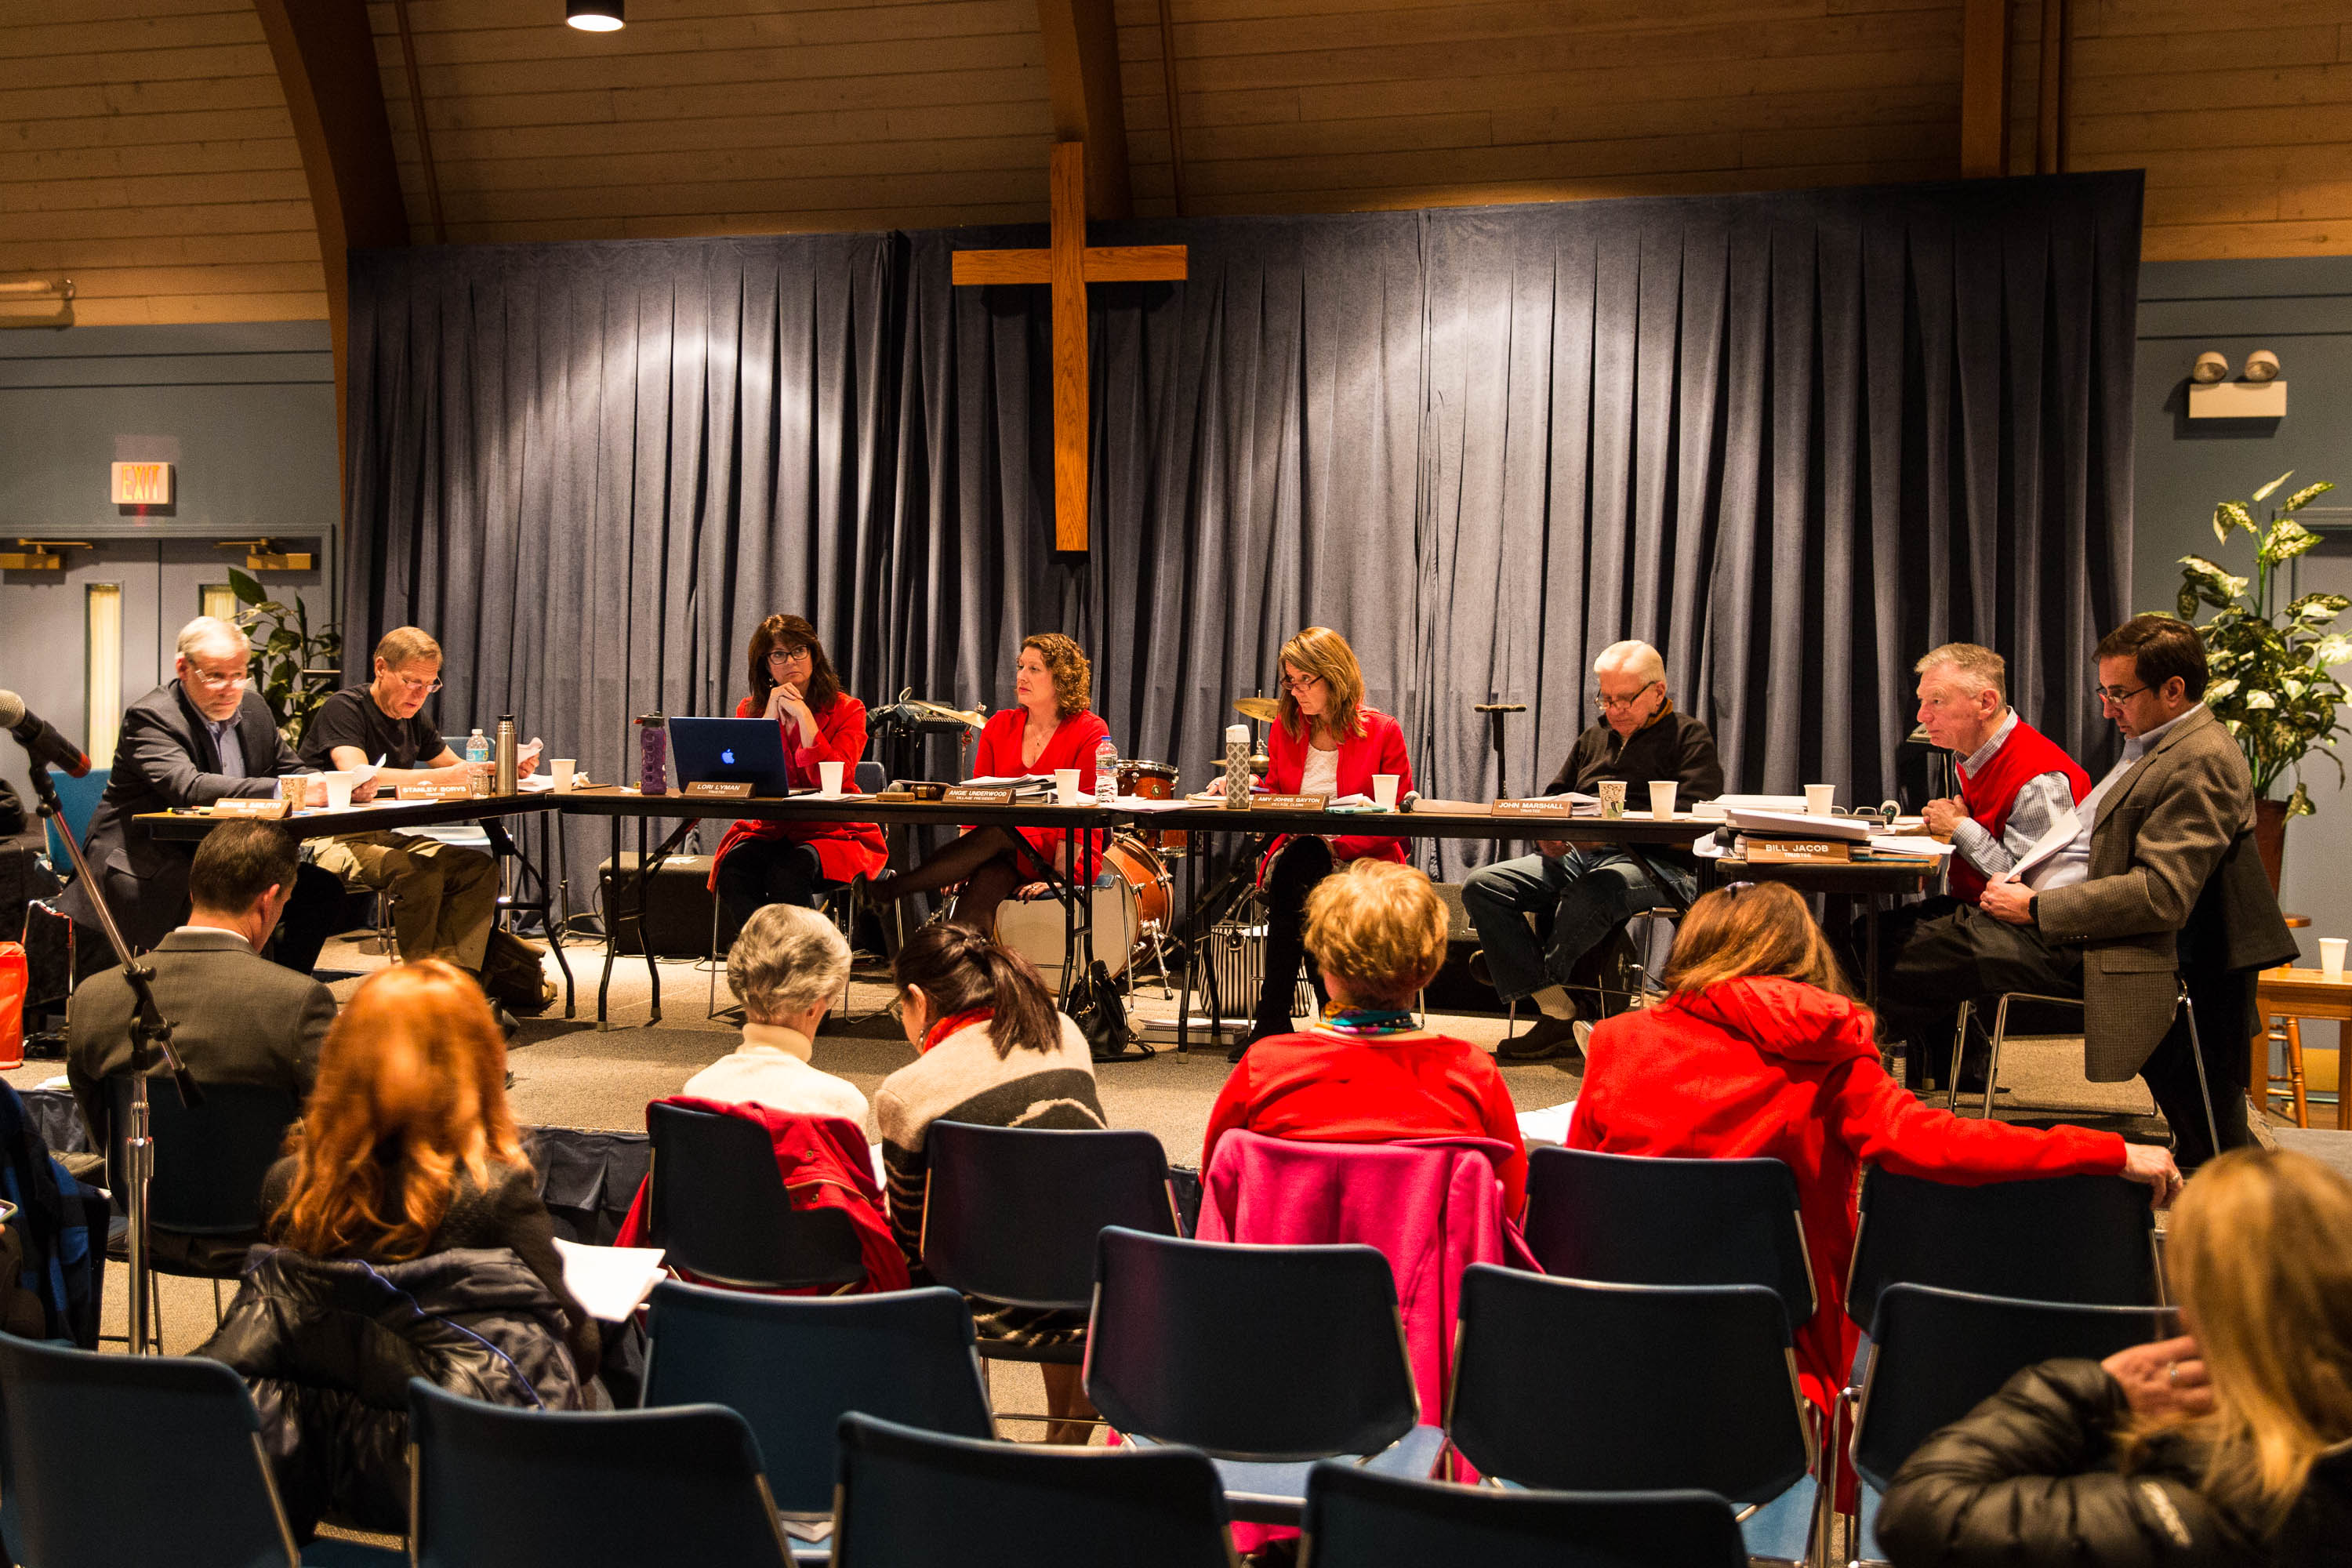 The voices of many in the Long Grove Community Church were heard at the February 14th Village Board meeting.